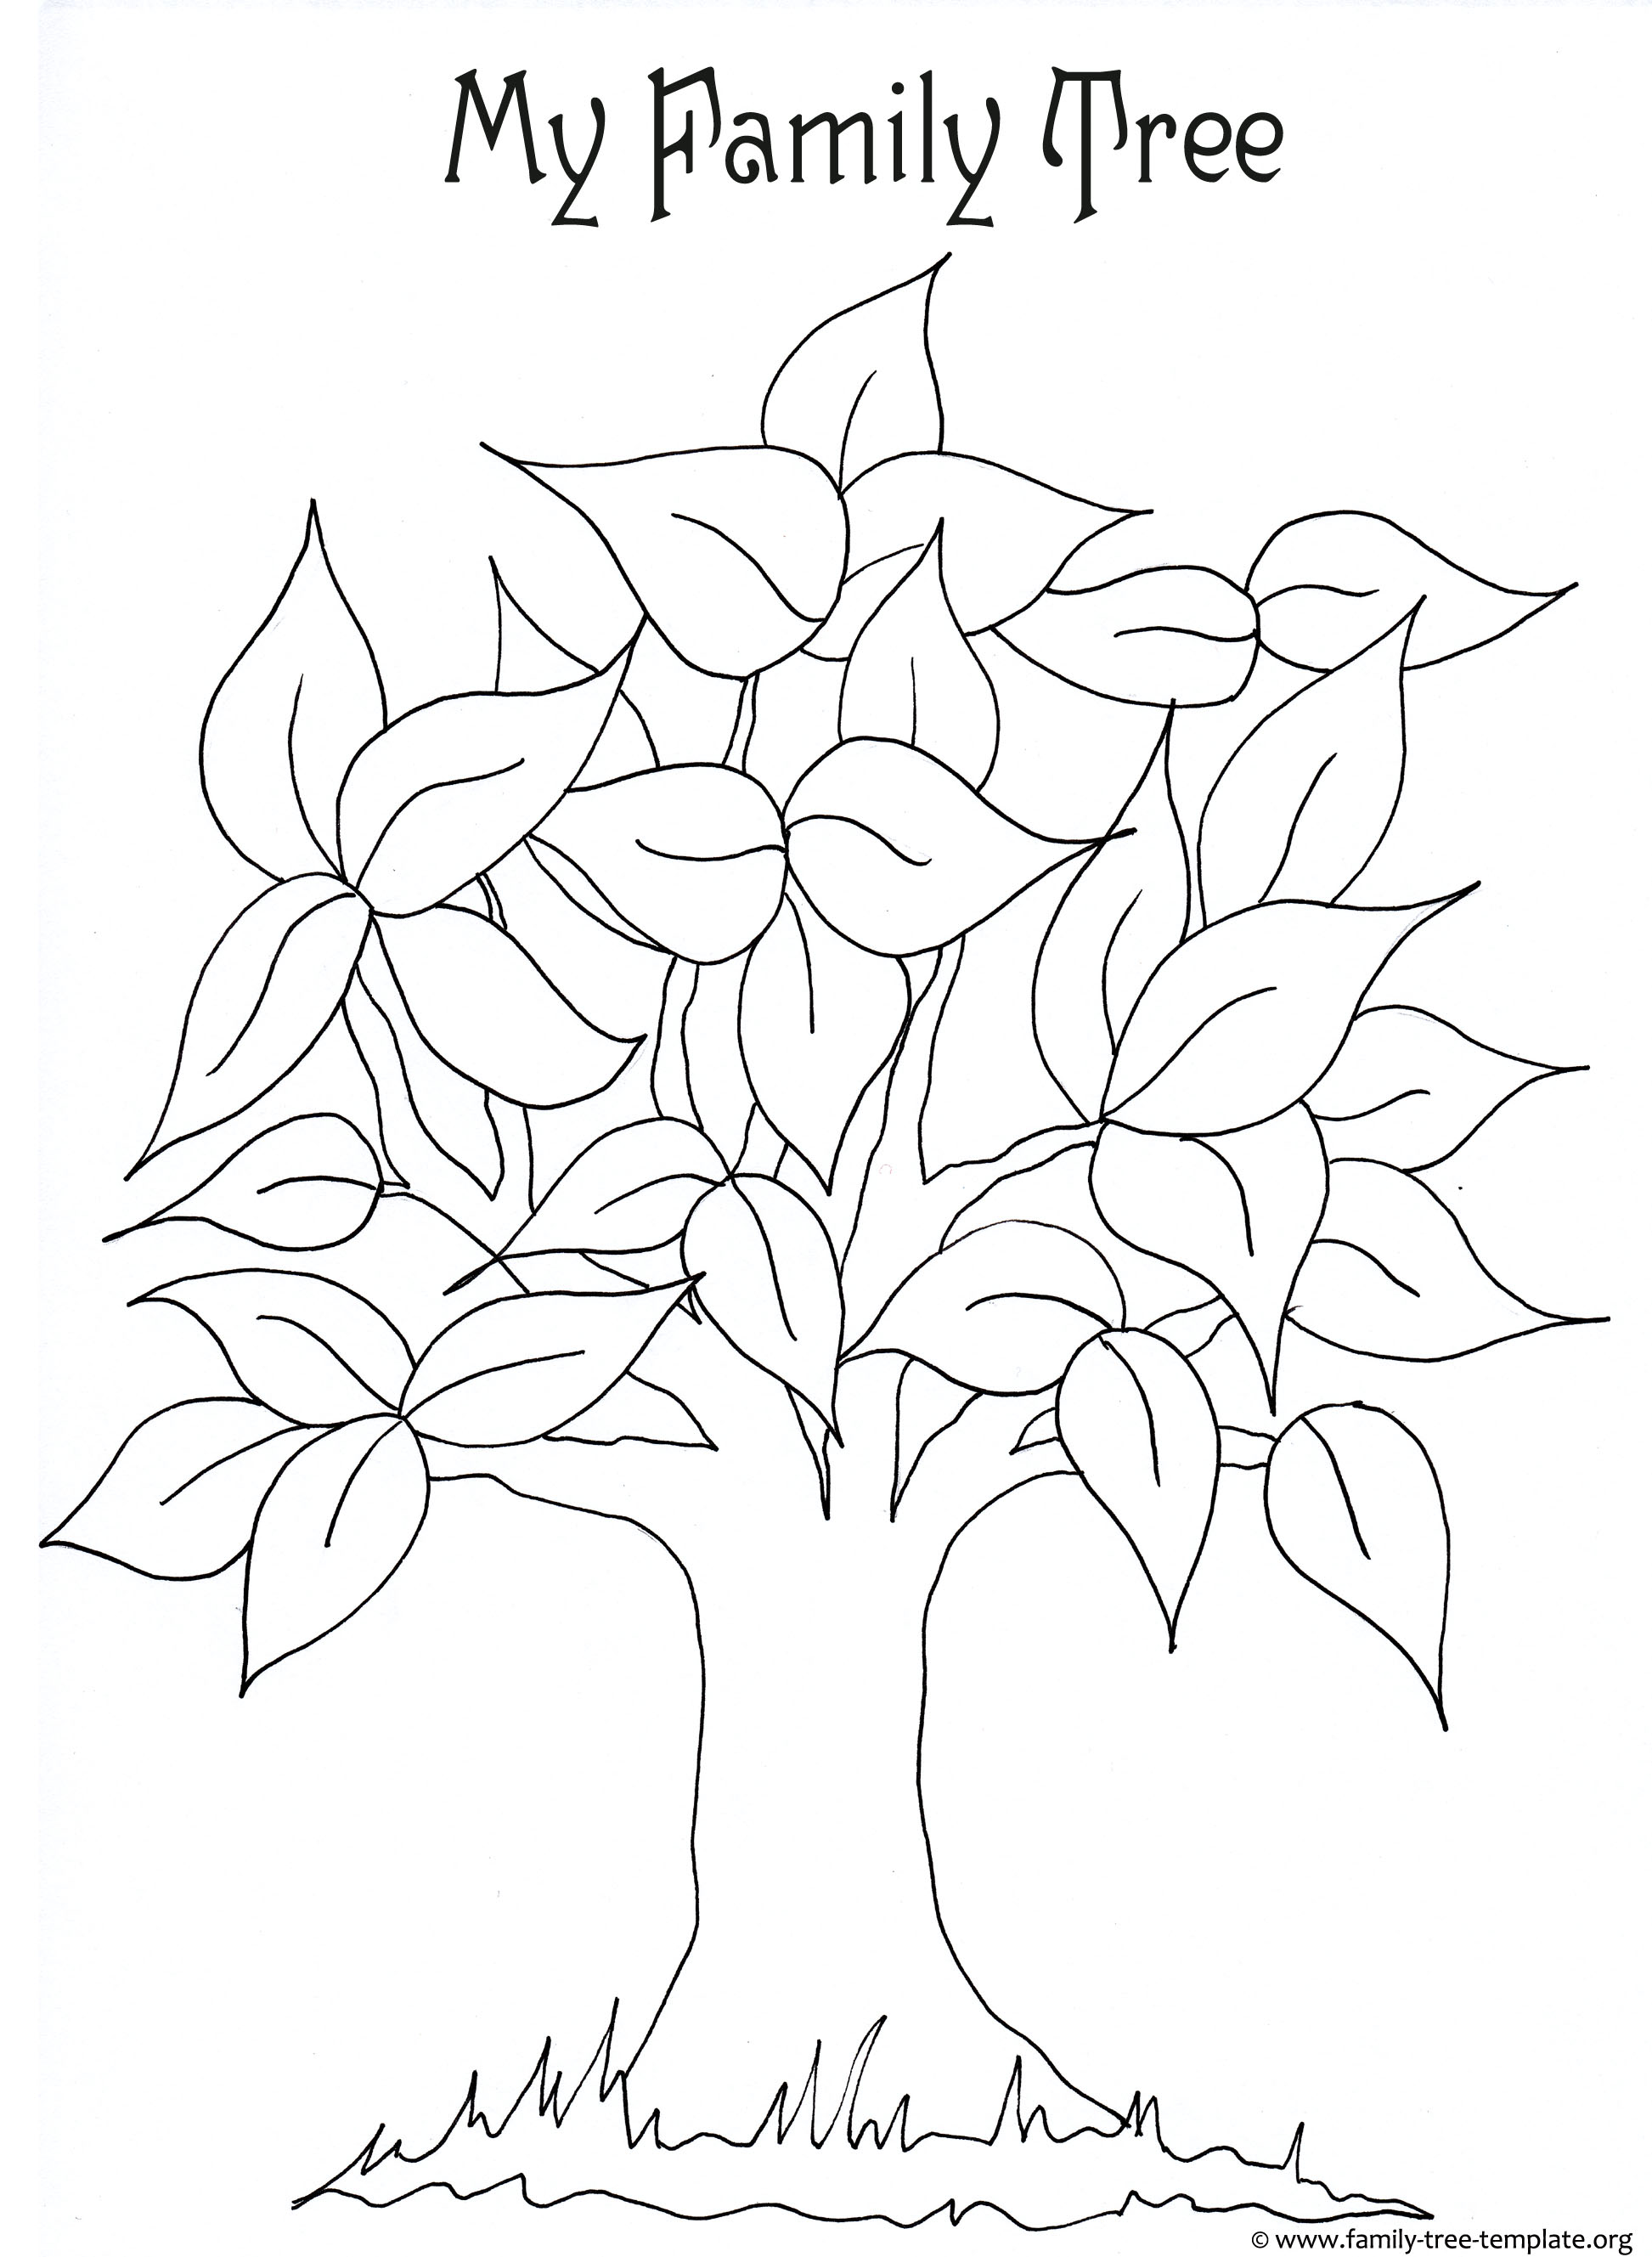 Free printable coloring page for kids with leaves and tree trunk to color.